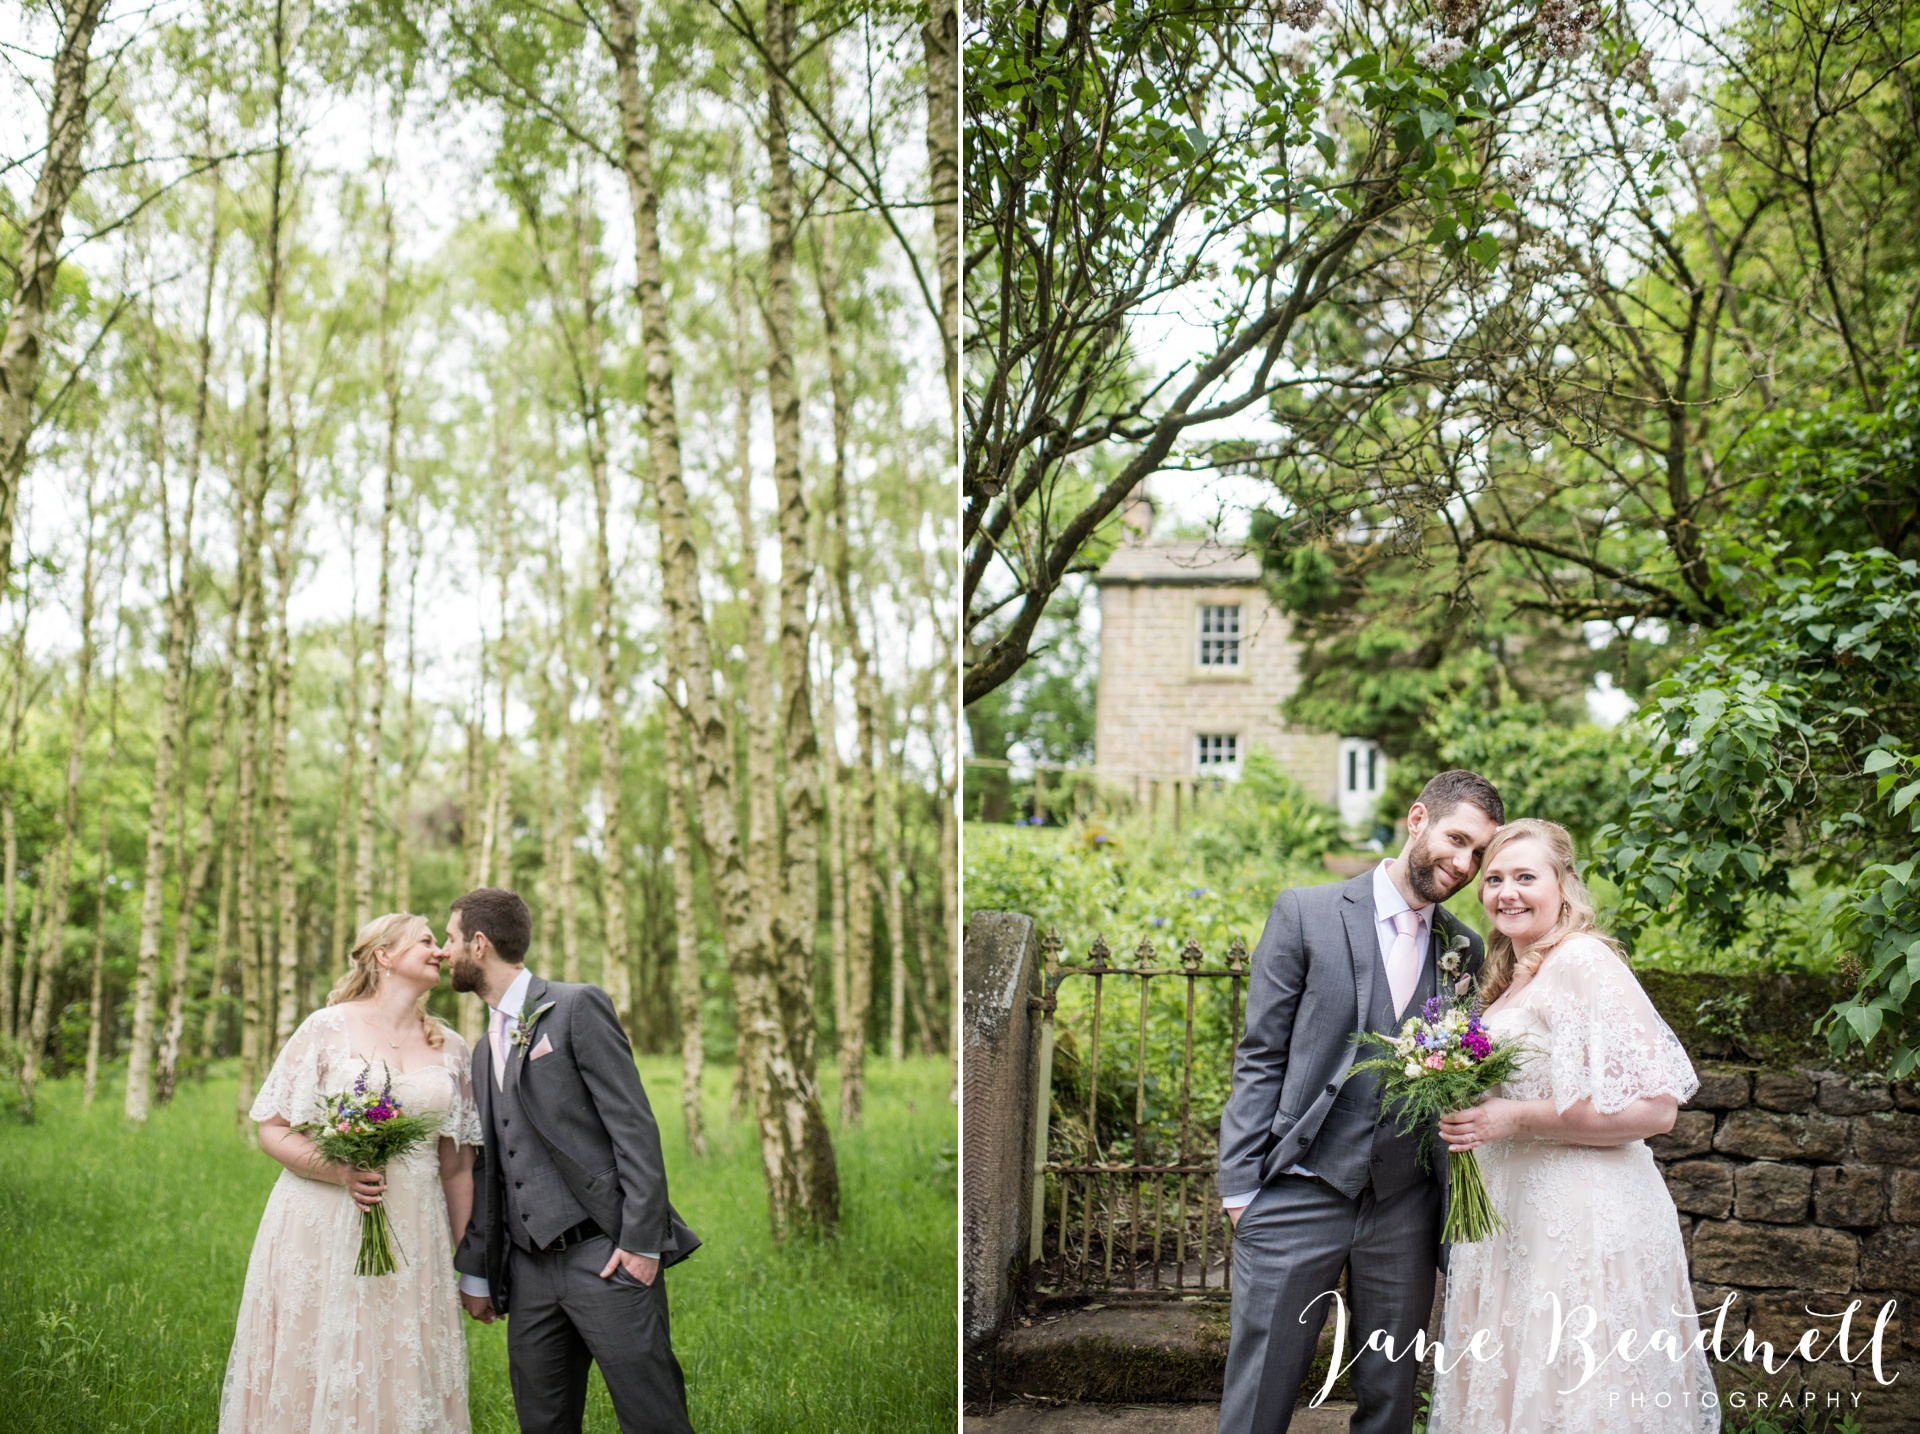 Yorkshire Wedding Photography the cheerful Chilli Barn Wedding by Jane Beadnell Photography_0135